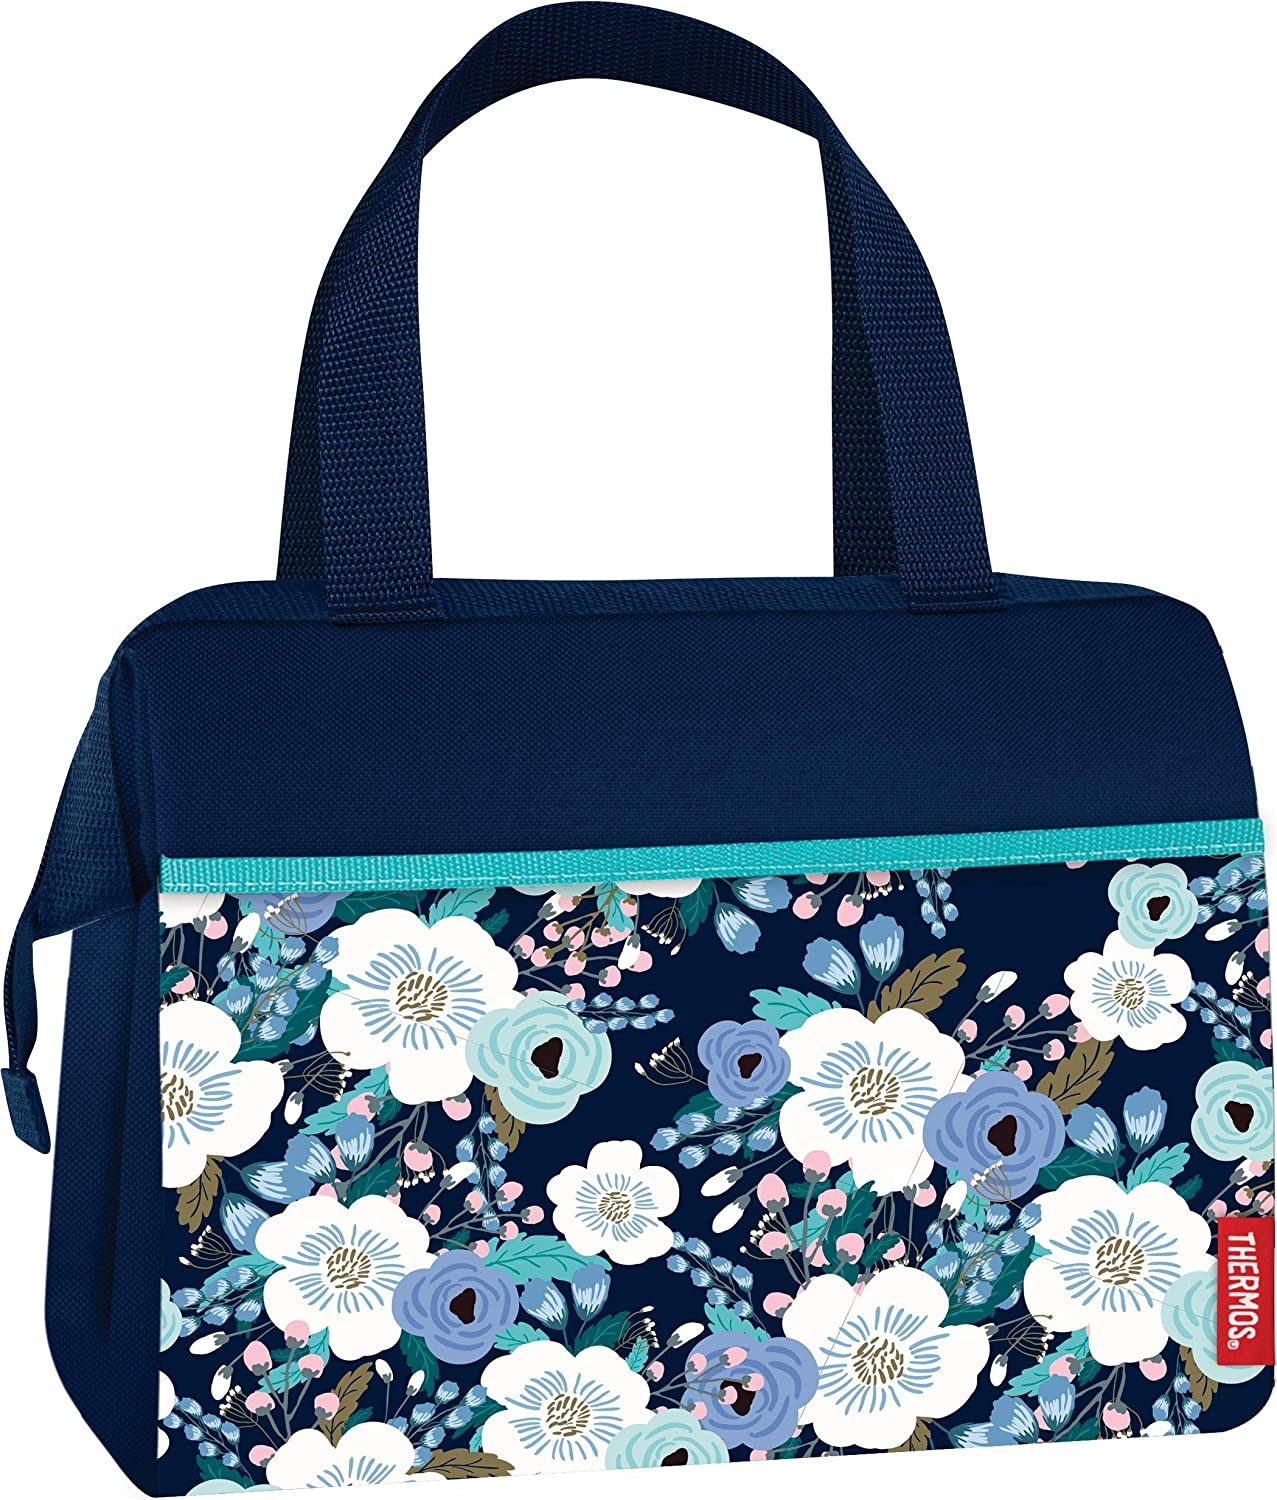 Thermos C520409004 Raya 9 Can Duffle Drink Cooler Bag Periwinkle Floral